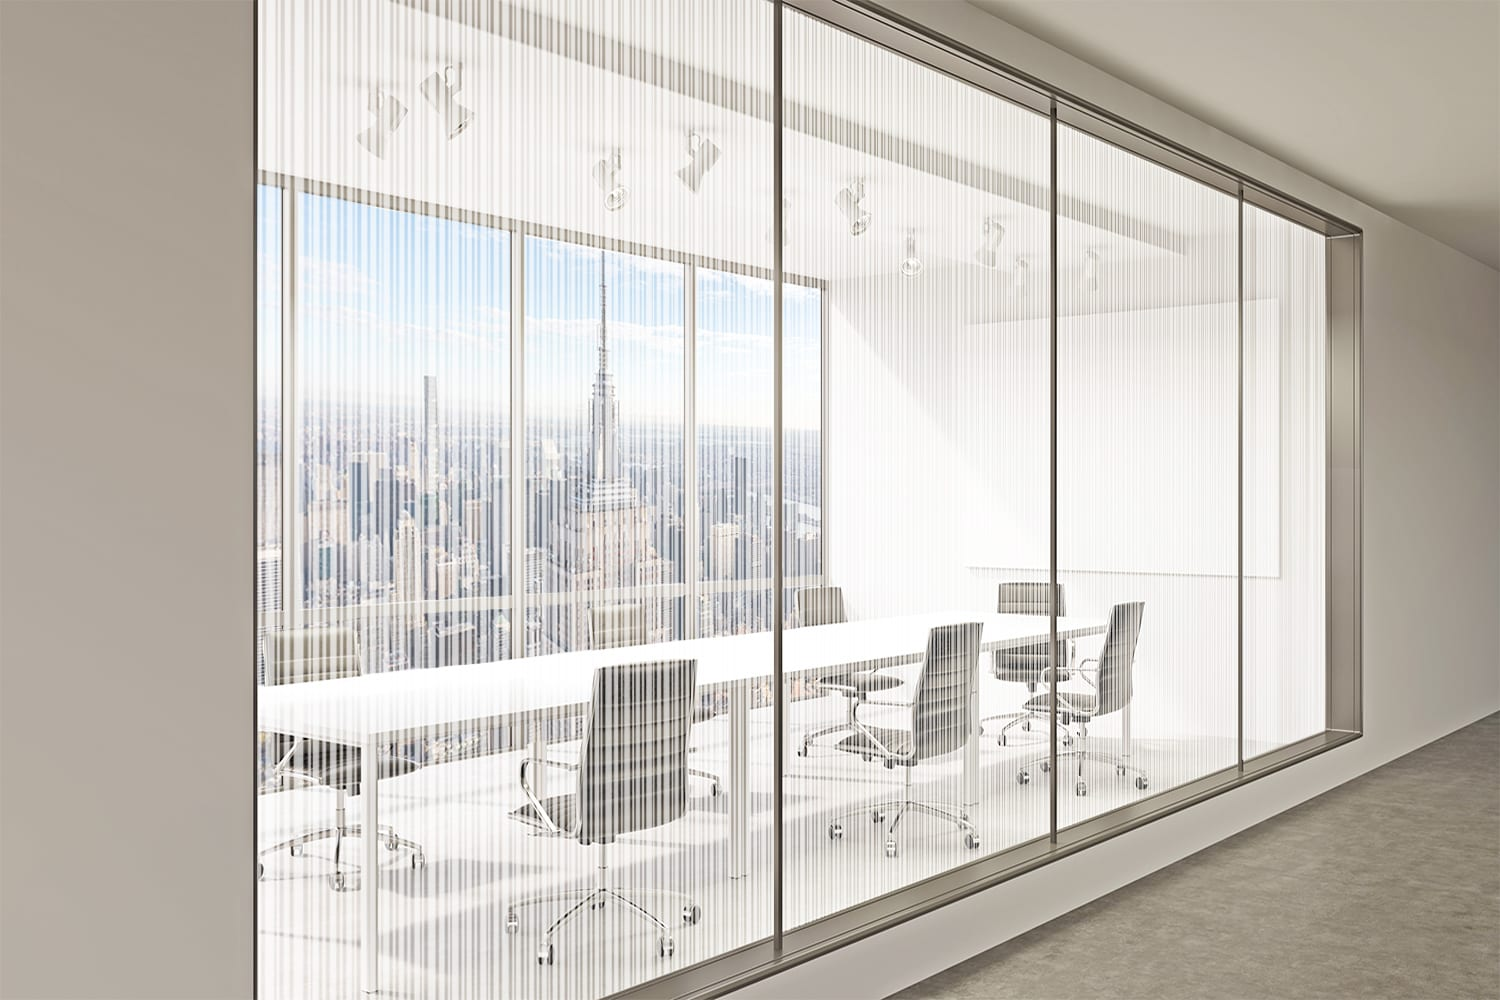 Office Rendering of Linear Overlay